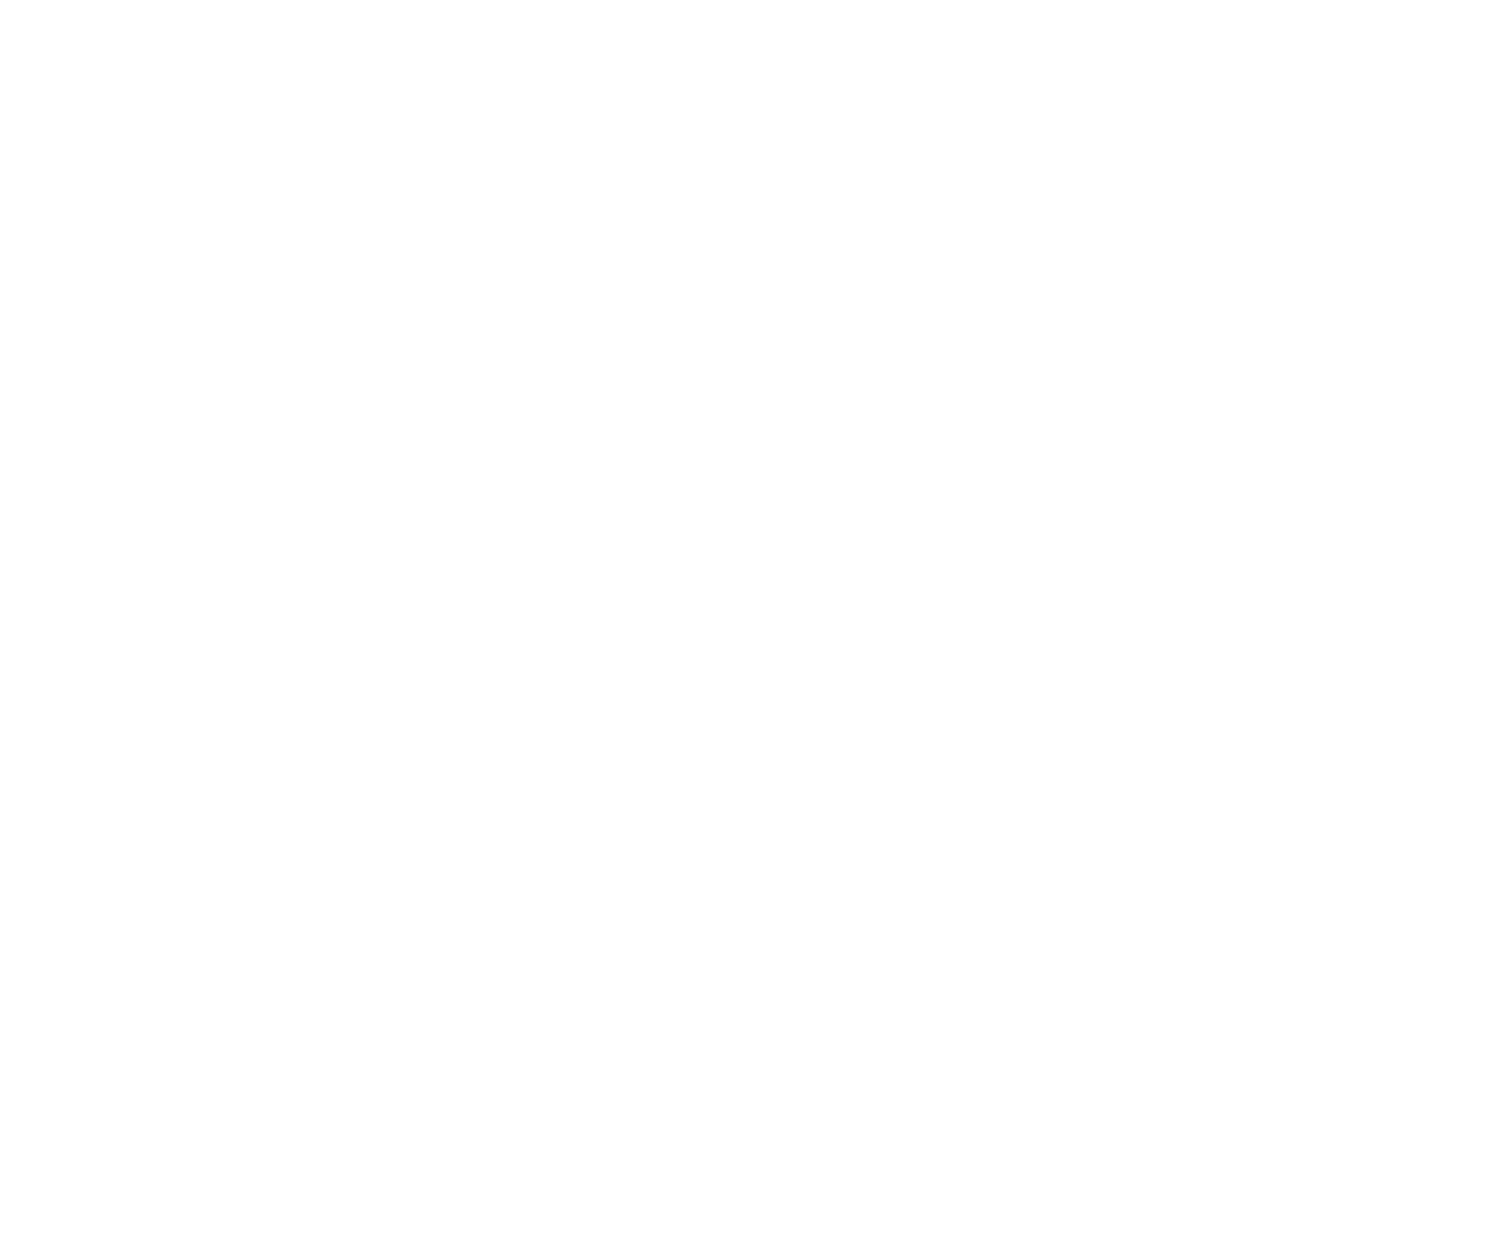 Peter Bodeker Construction